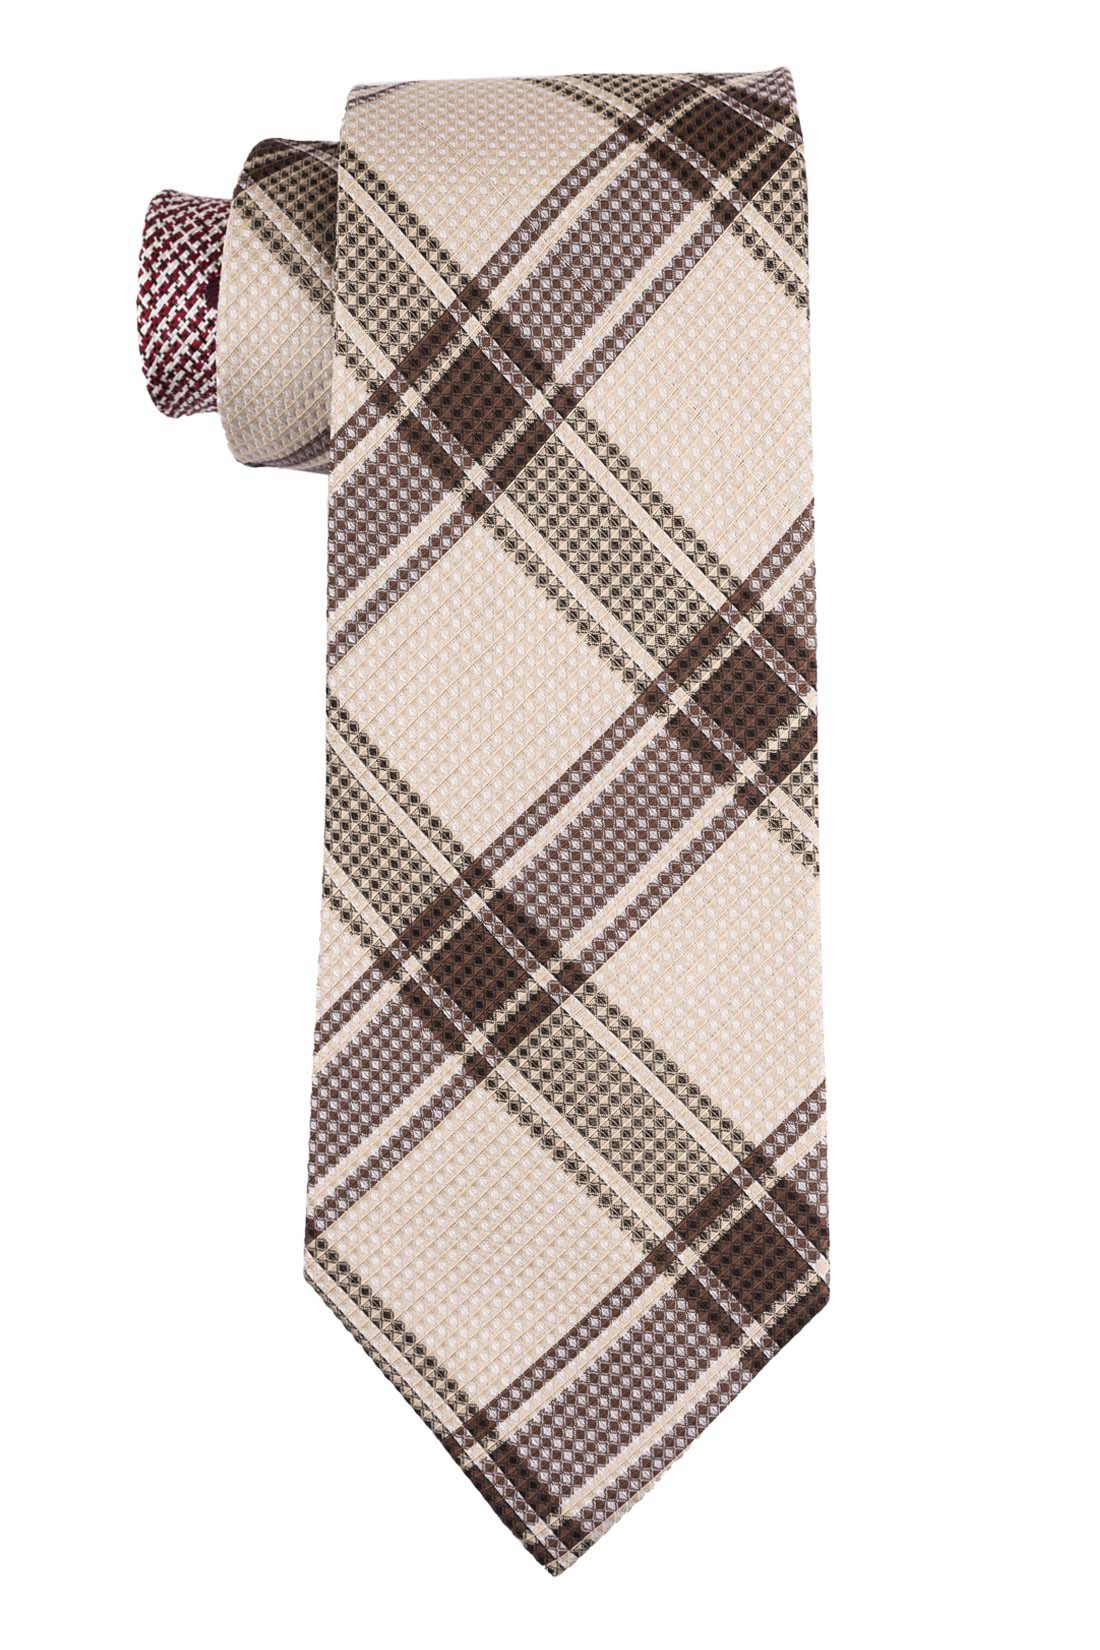 Wingman Plaid Yellow and Brown 100% Silk Necktie